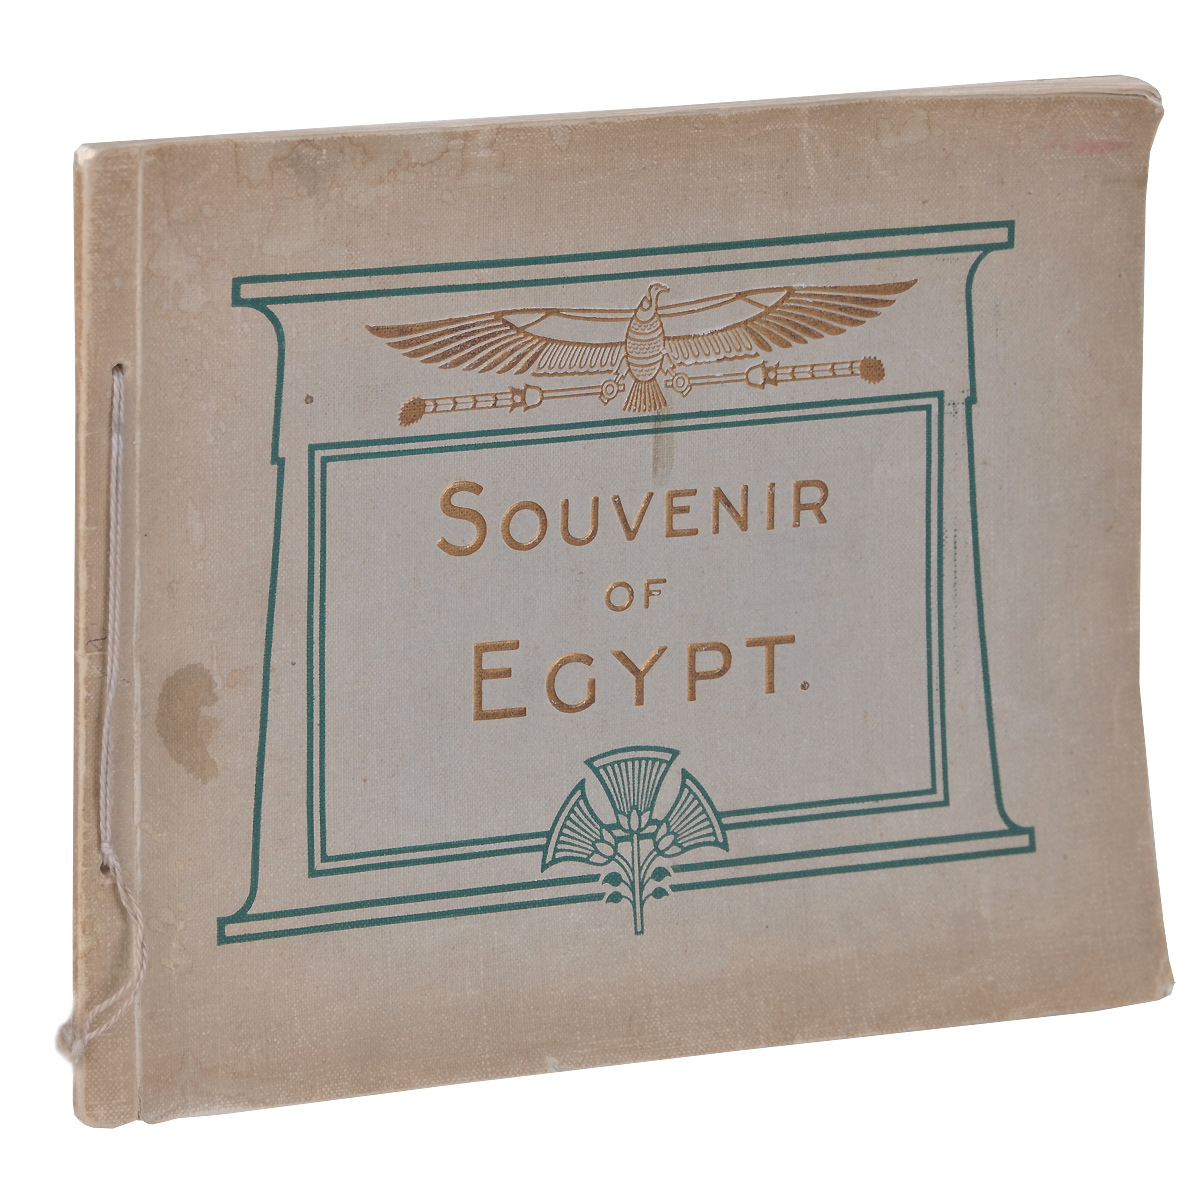 Souvenir of EgyptHX-1280FЛондон, 1920 год. Tillotson Press. Издательский переплет. Сохранена оригинальная обложка. Сохранность хорошая.Album Souvenir of Egypt contains 70 illustrations of Lower and Upper Egypt. Including all the principal views of places of interest on the Nile.Издание не подлежит вывозу за пределы Российской Федерации.